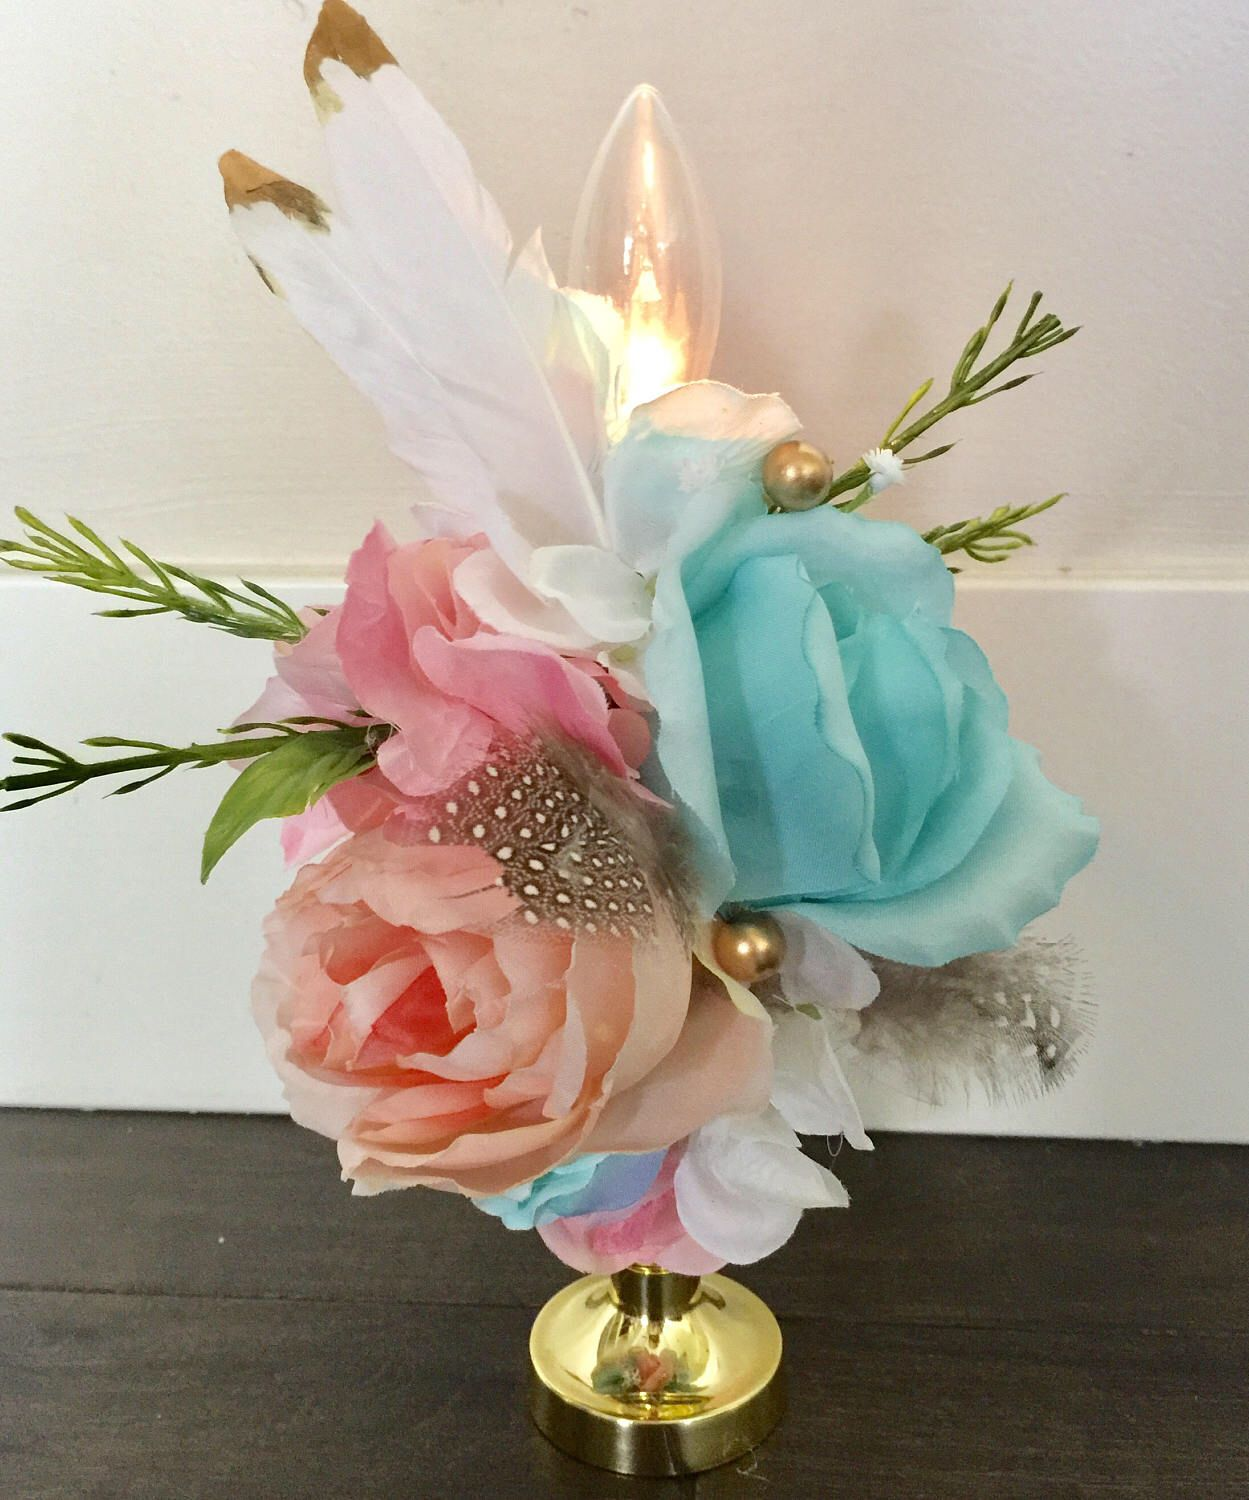 Boho Baby Shower Centerpieces ~ Boho lighted centerpiece pow wow weddding baby shower